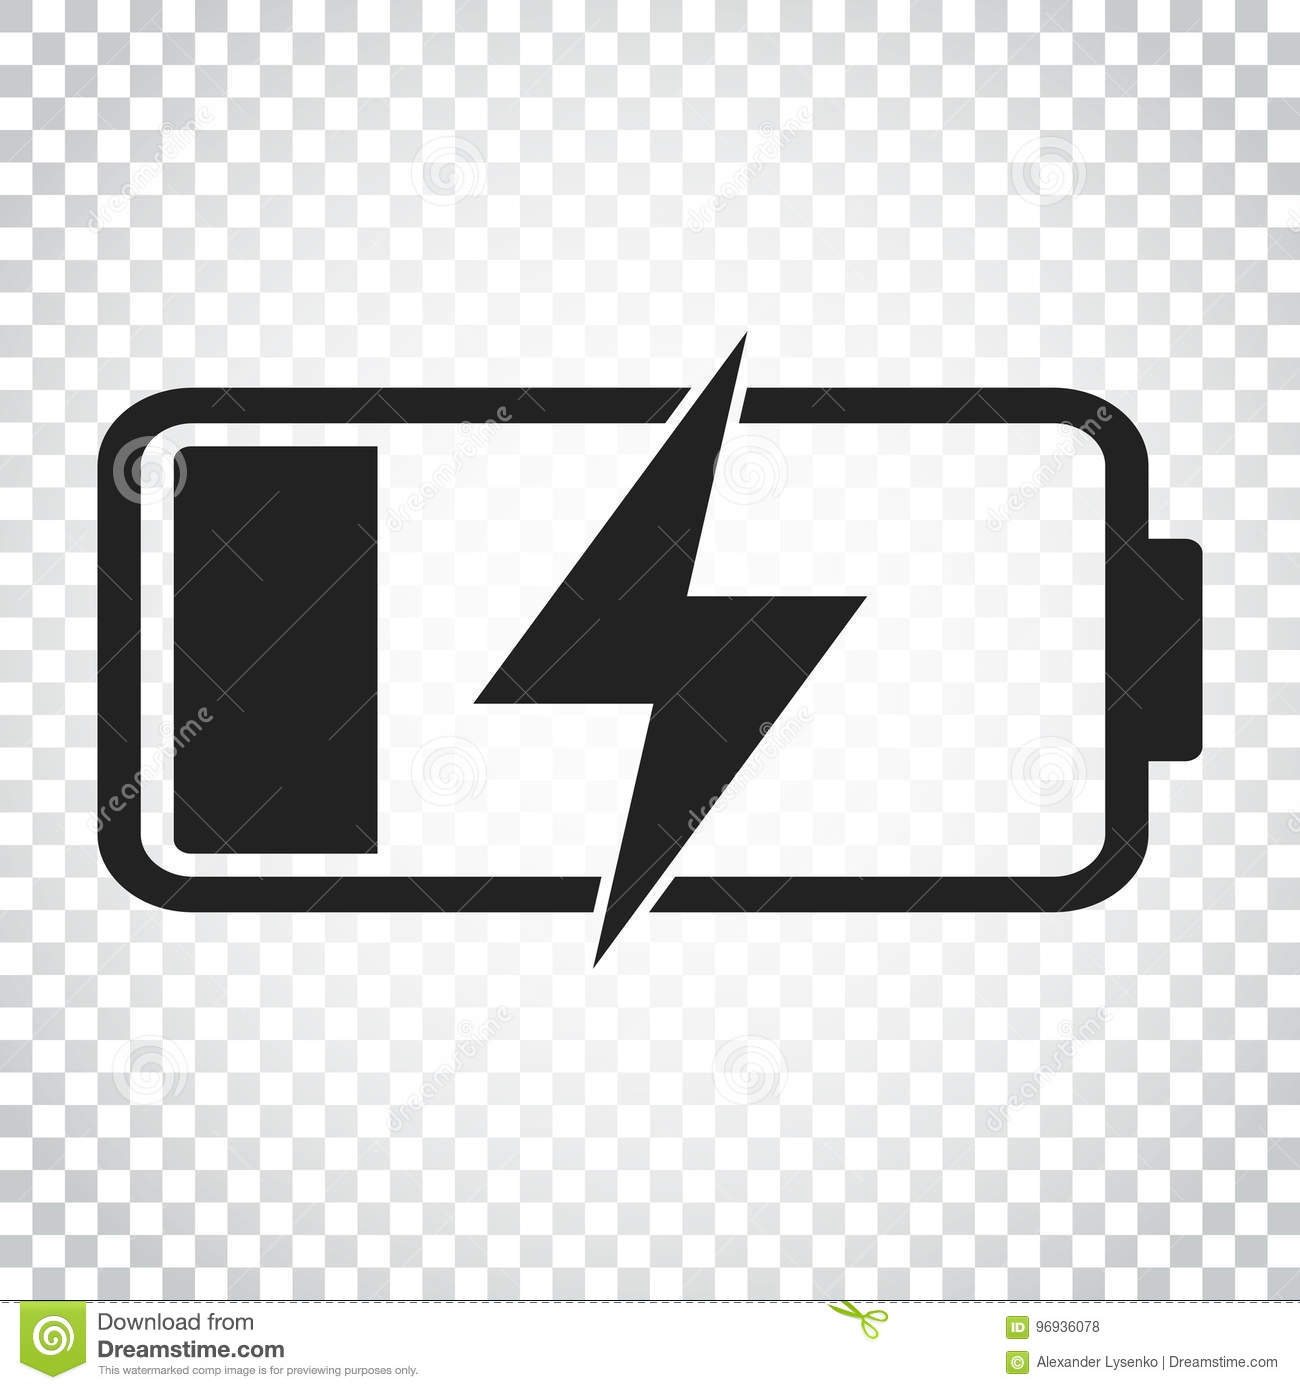 Battery Charge Level Indicator Vector Illustration On